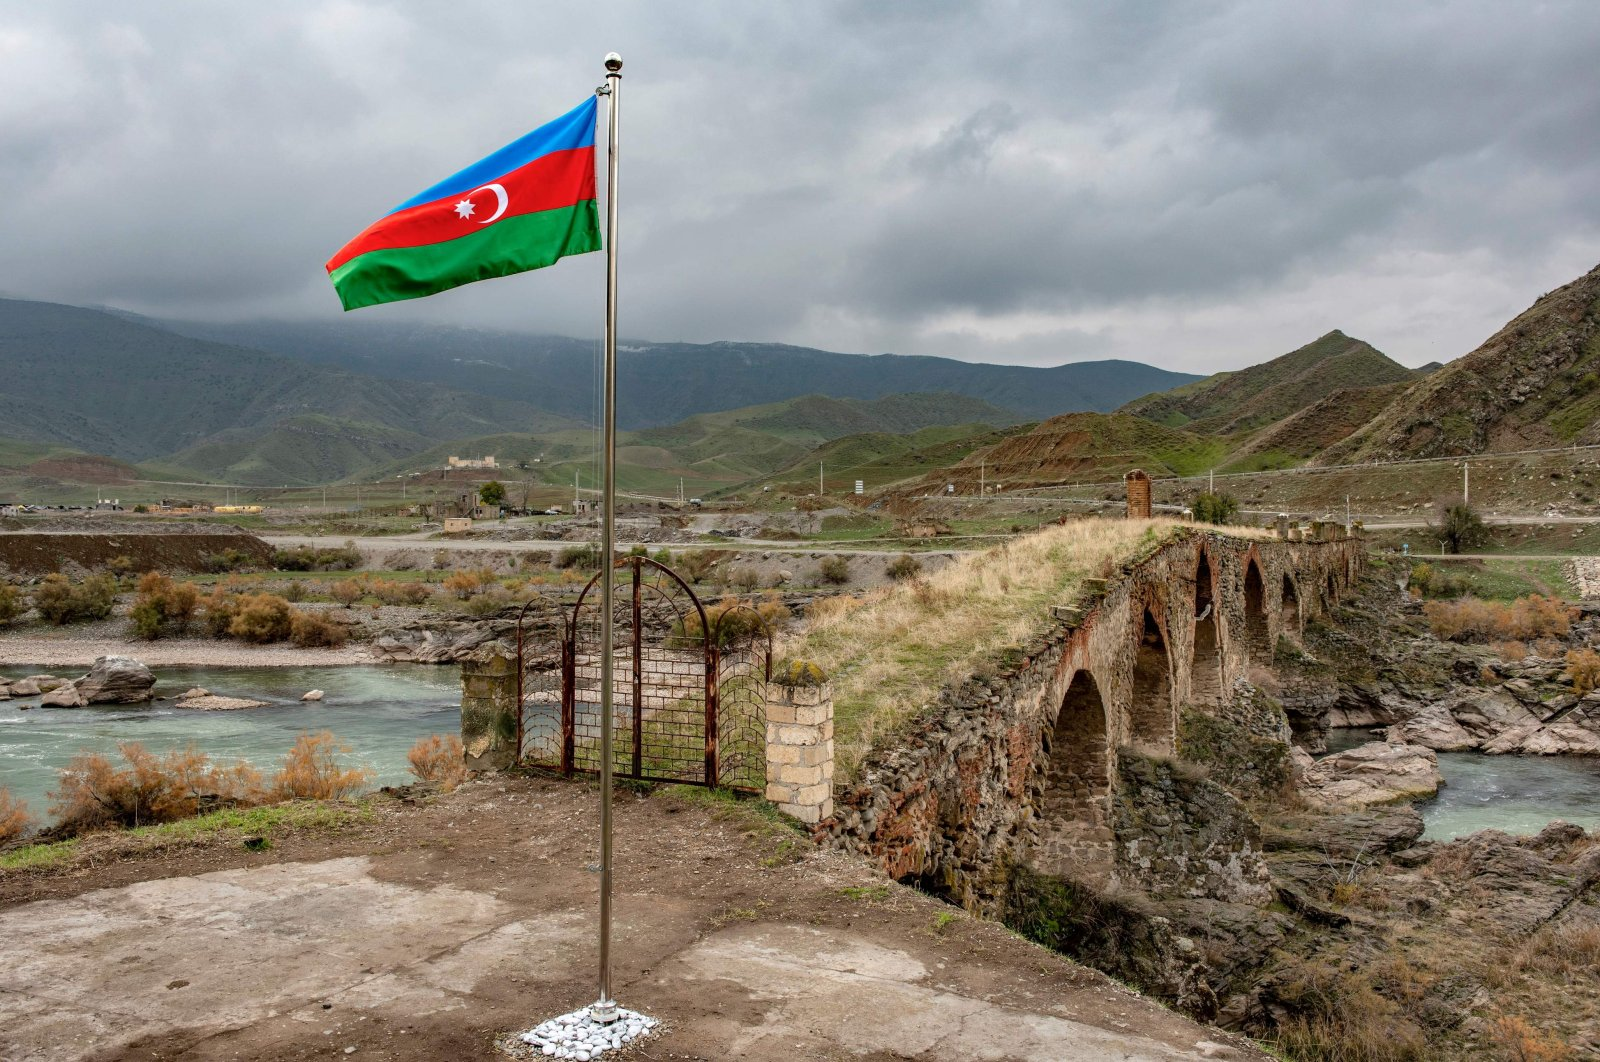 An Azerbaijani national flag flies next to the medieval Khudaferin bridge in Jebrayil district at the country's border with Iran, Azerbaijan, Dec. 9, 2020. (AFP Photo)